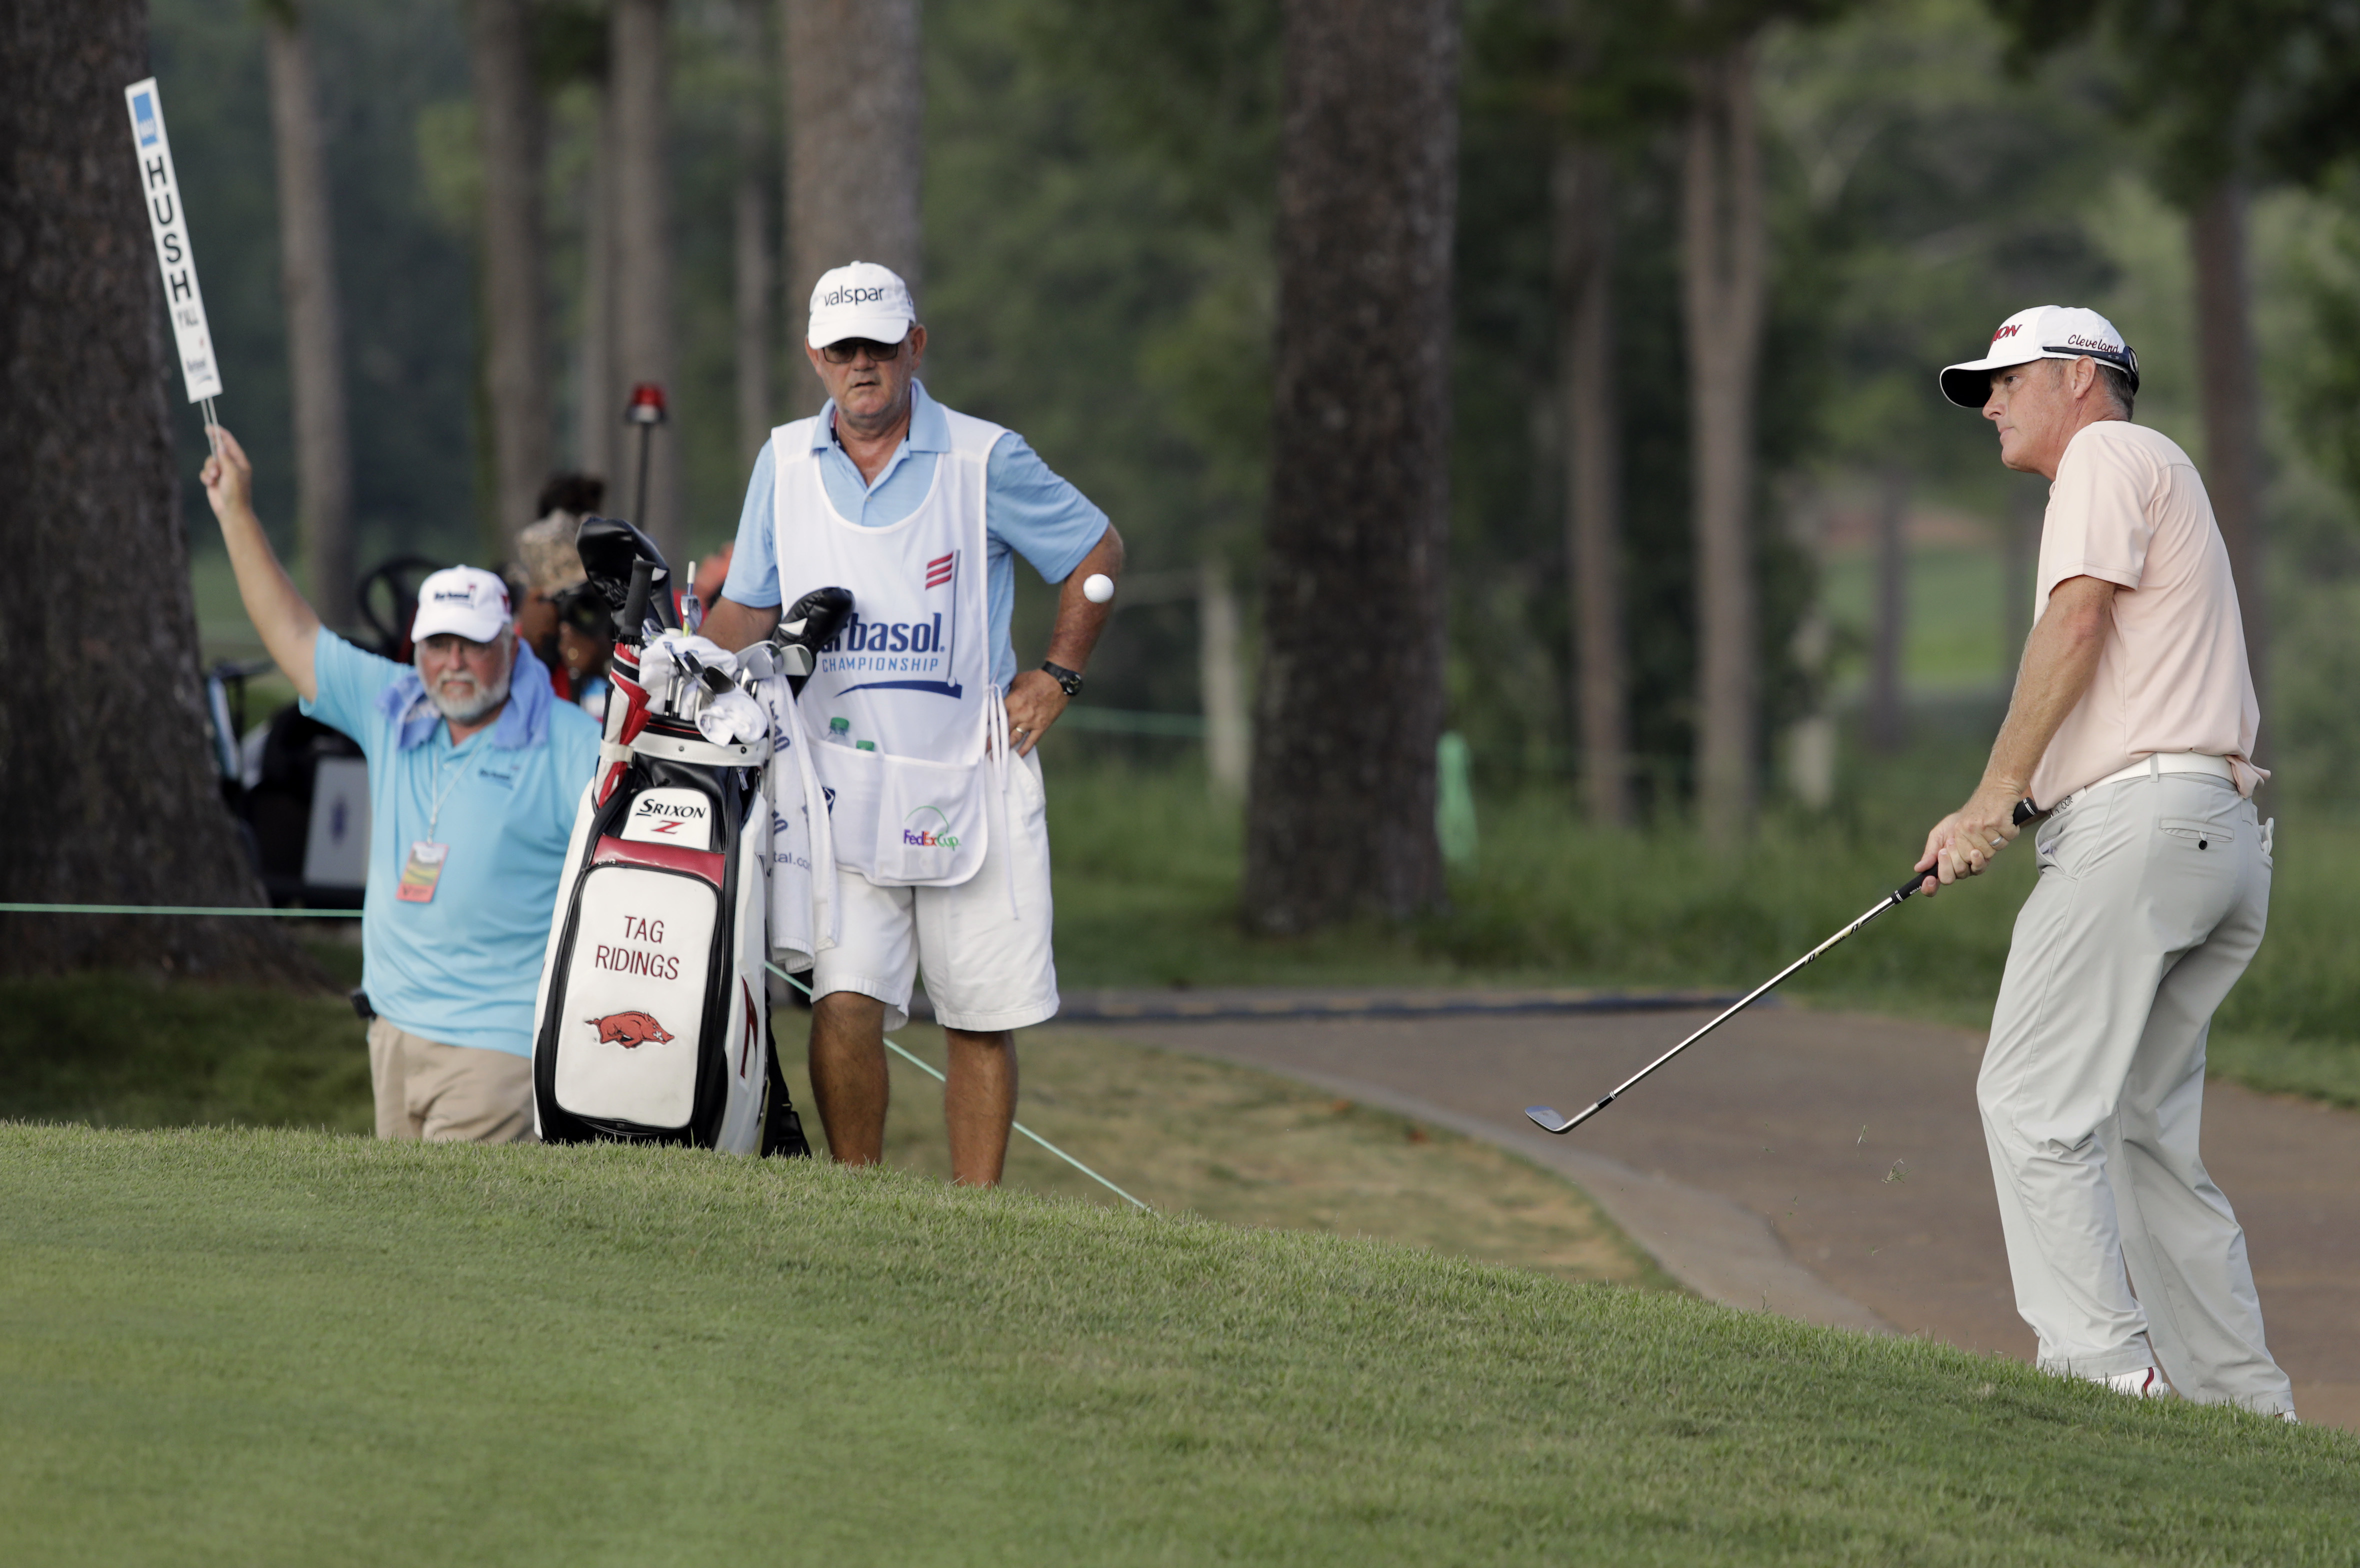 Tag Riding, right, chips to the green on 18 during the third round of the Barbasol Championship golf tournament Saturday, July 22, 2017, in Opelika, Ala. (Todd J. Van Emst/Opelika-Auburn News via AP)